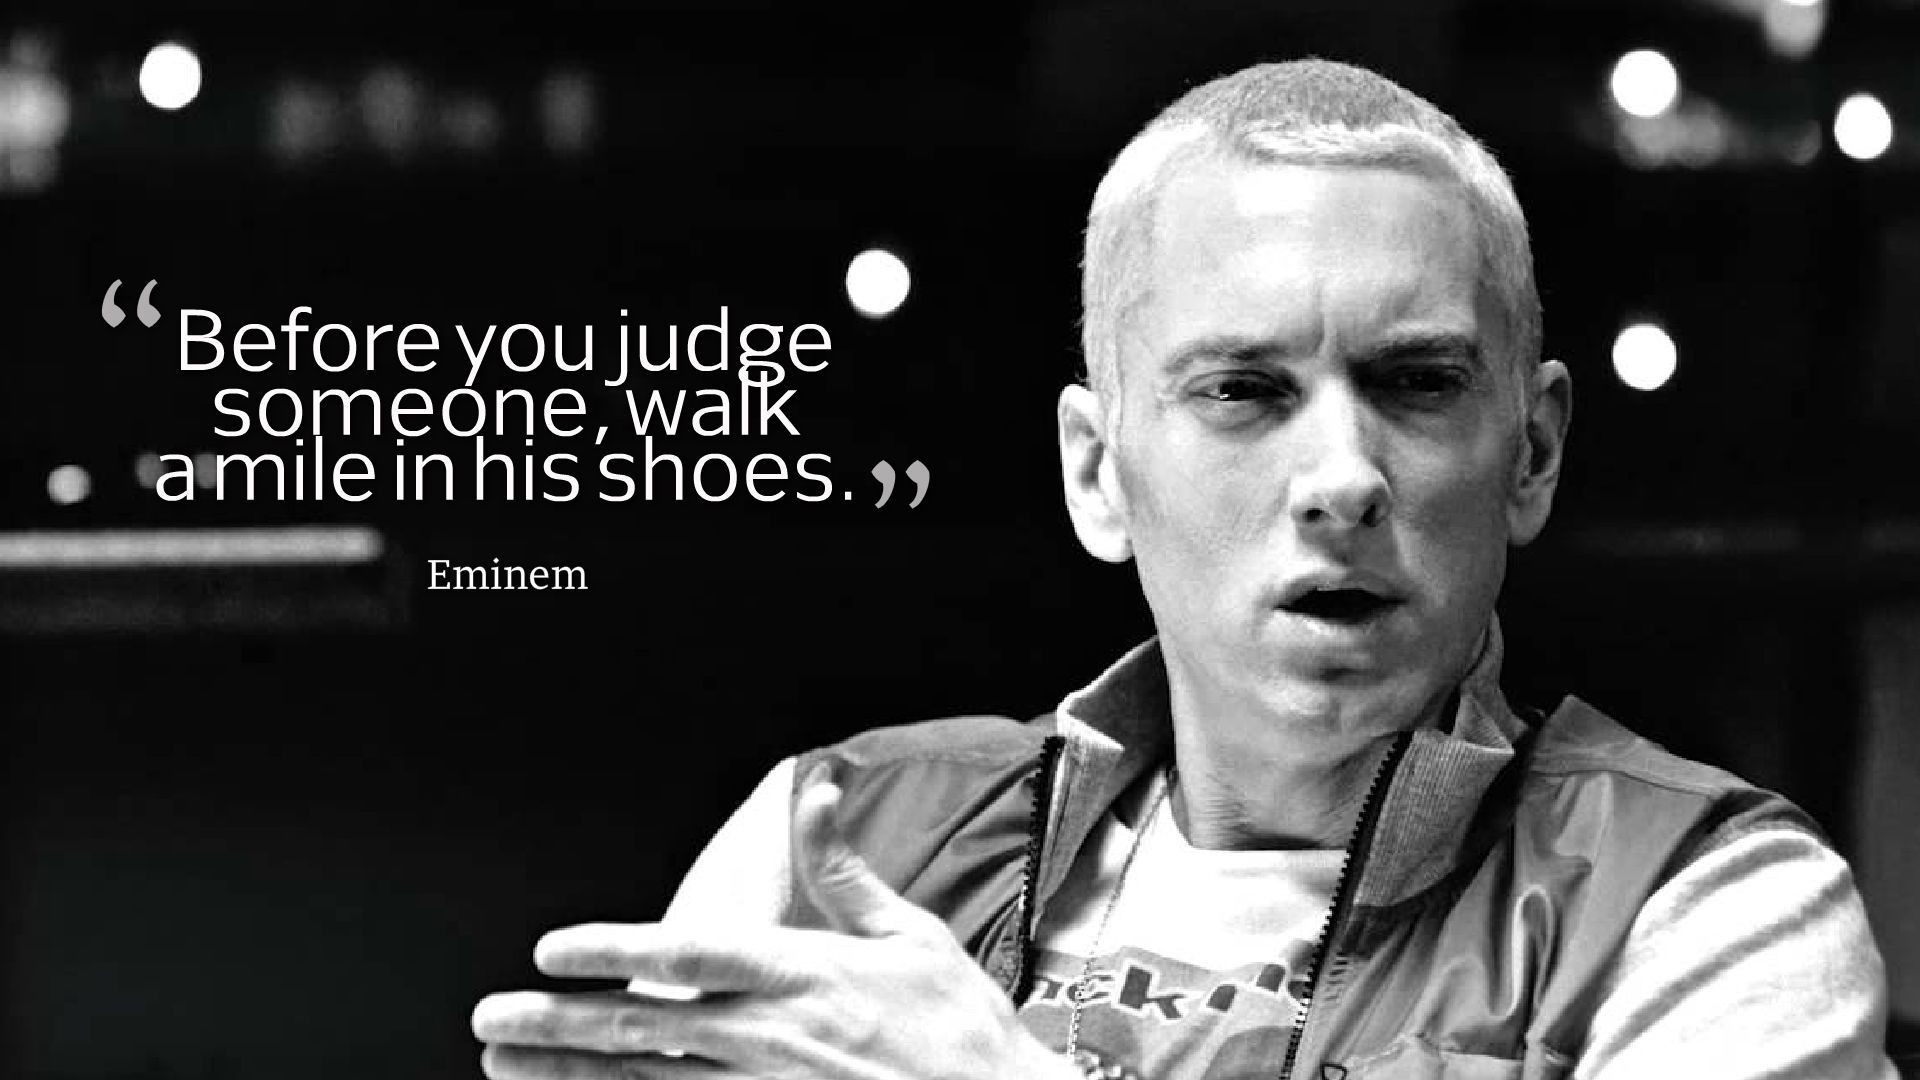 1985x3000 Cool Collections Of Eminem IPhone Wallpapers For Desktop Laptop And Mobiles Here You Can Download More Than 5 Million Photography